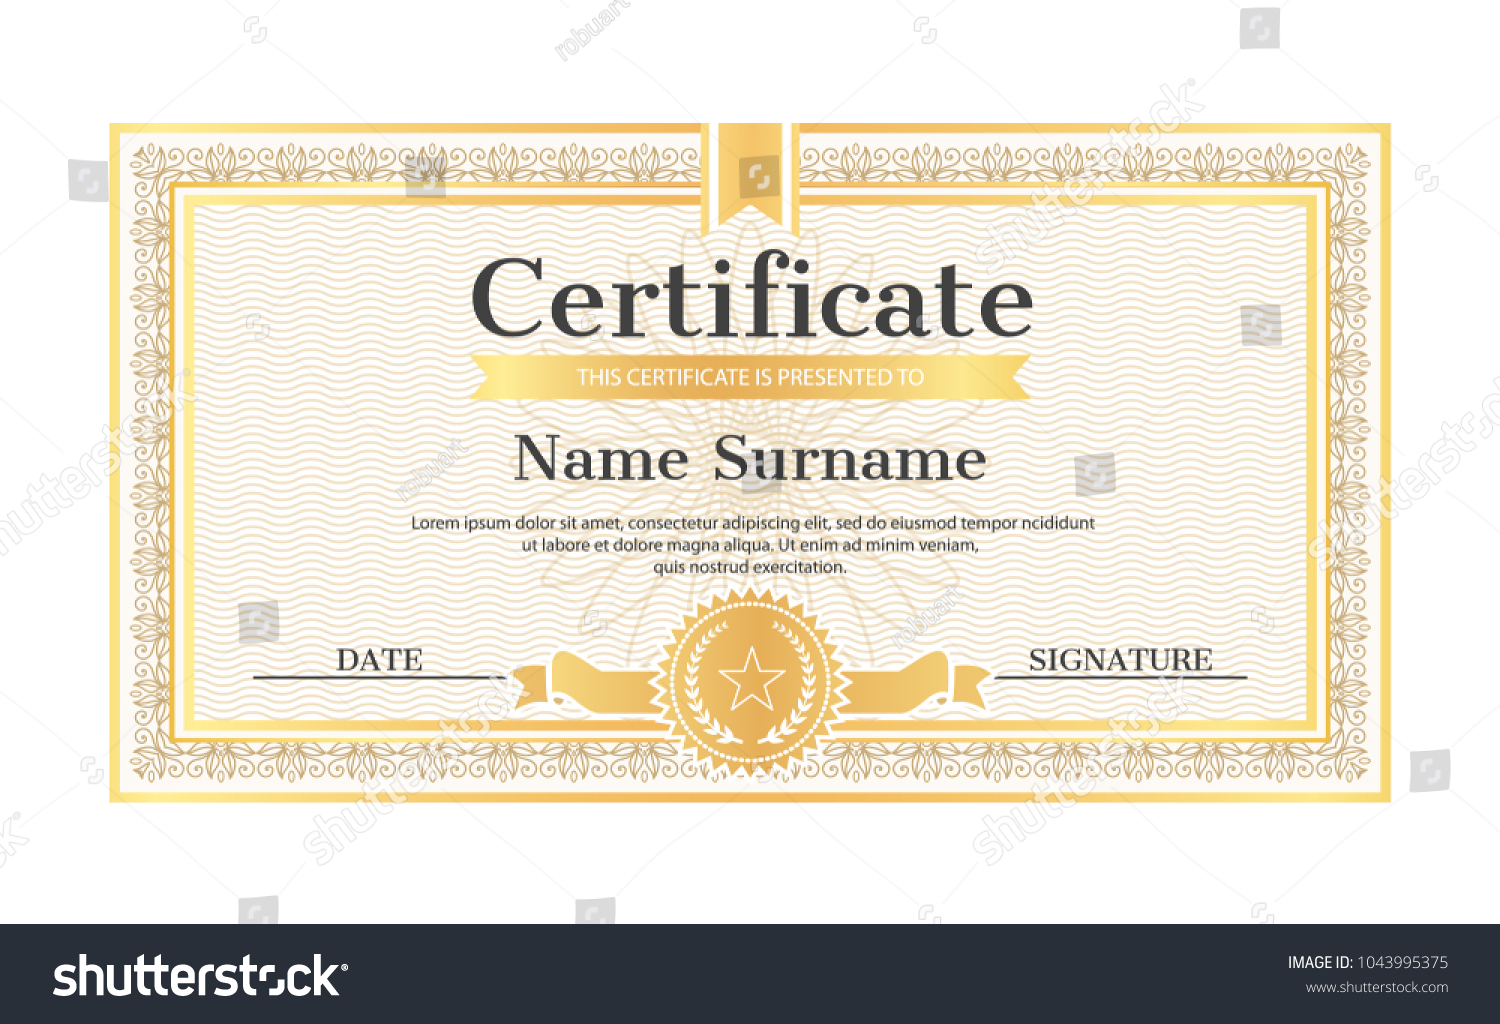 Certificate template editable name surname date stock photo photo certificate template editable name and surname date and signature realistic certificate sample in golden yelopaper Images